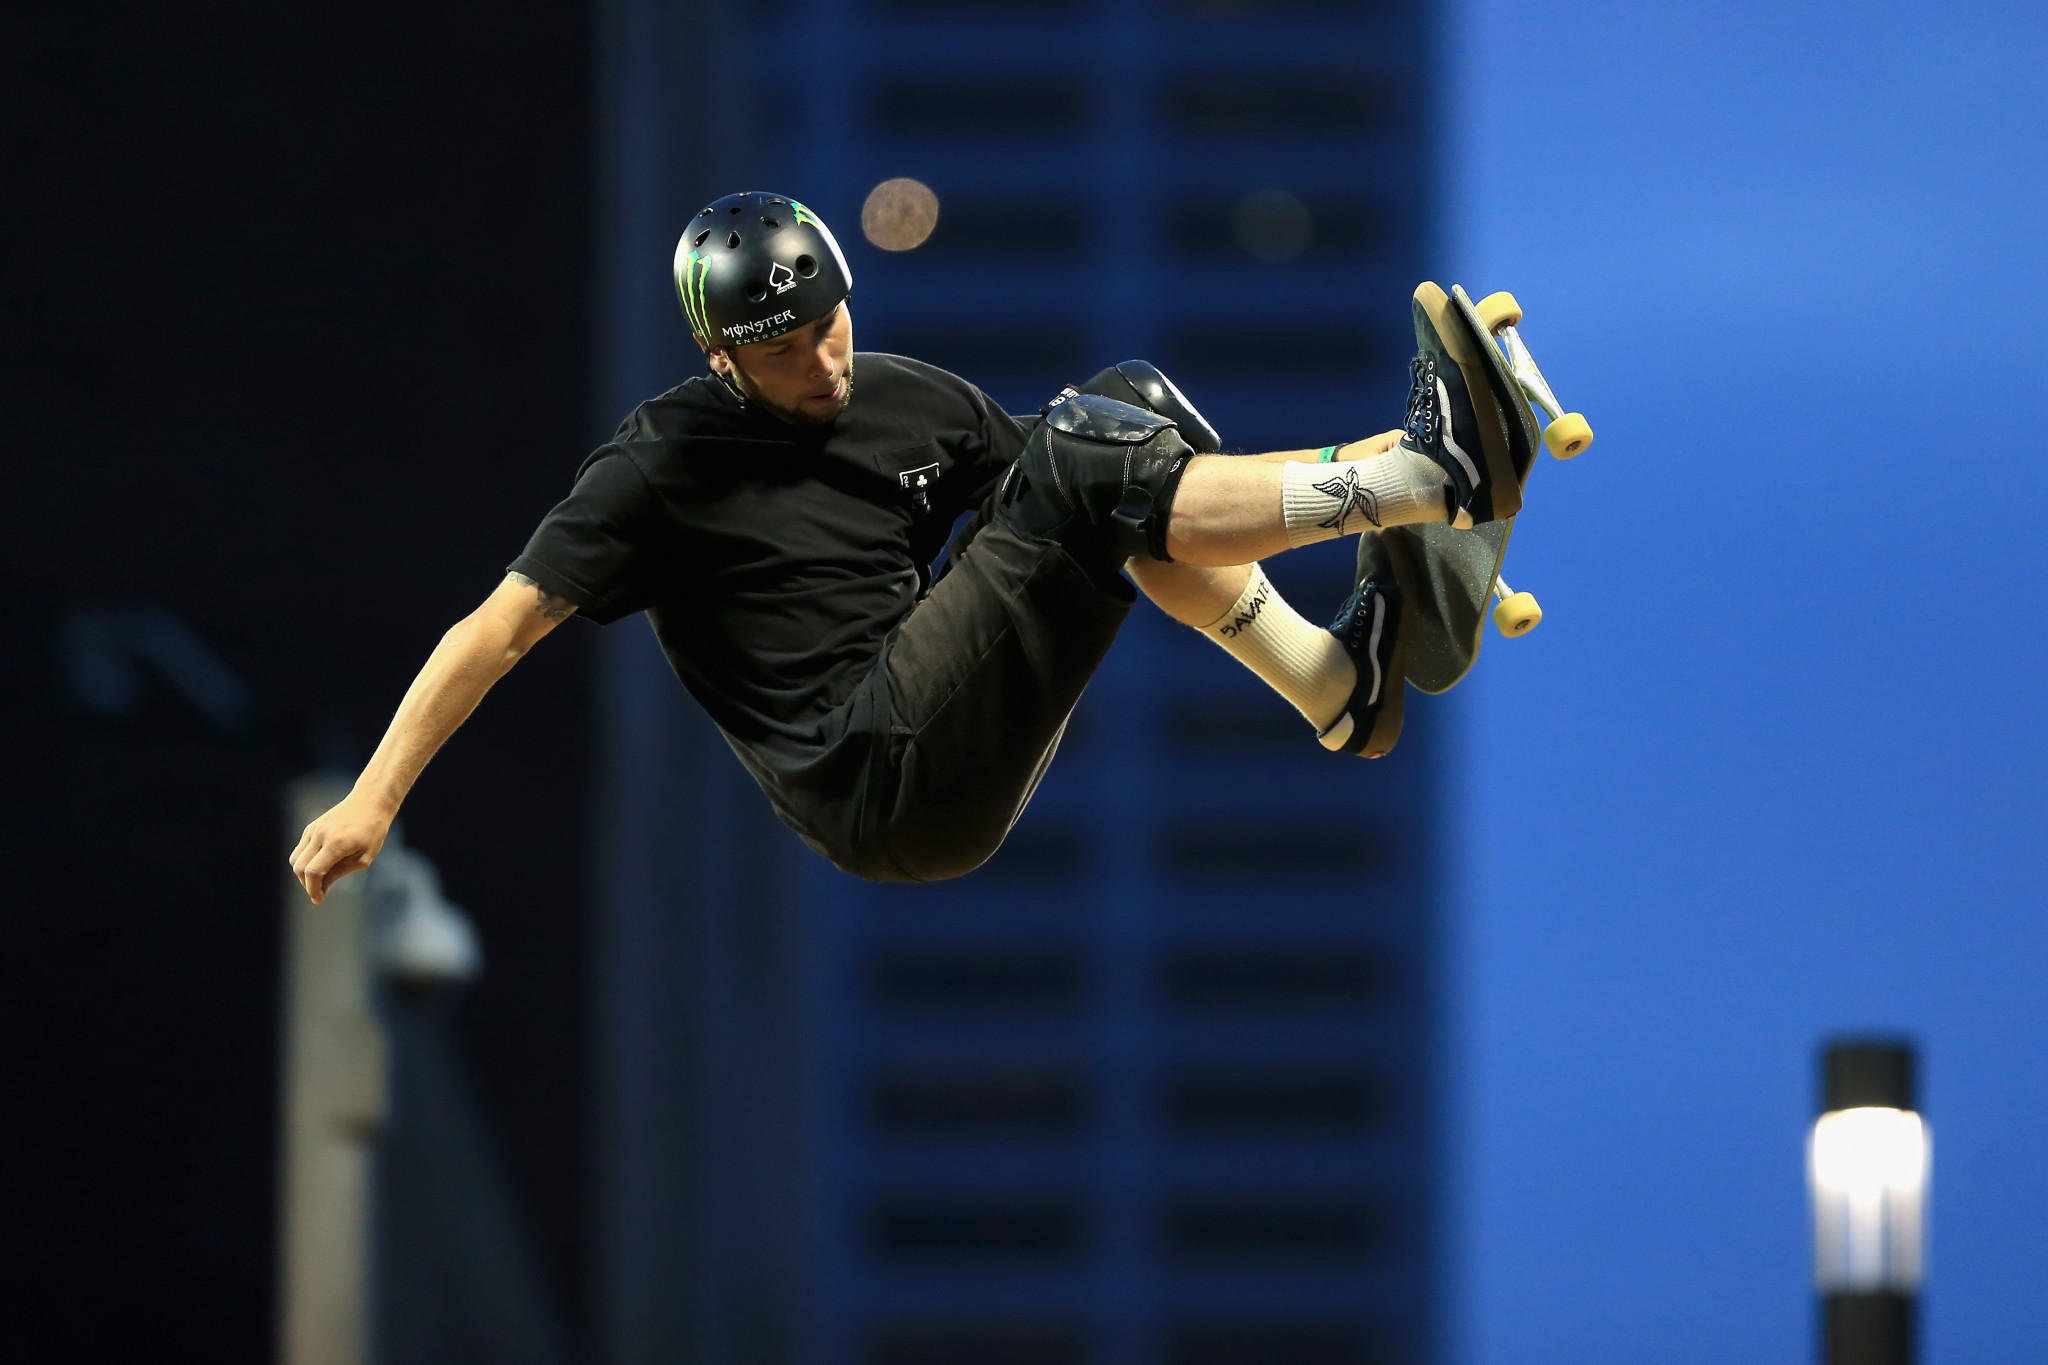 Sam Beckett, the first British skateboarder to win a gold medal at the Summer X Games, has also been named on the team ©Getty Images